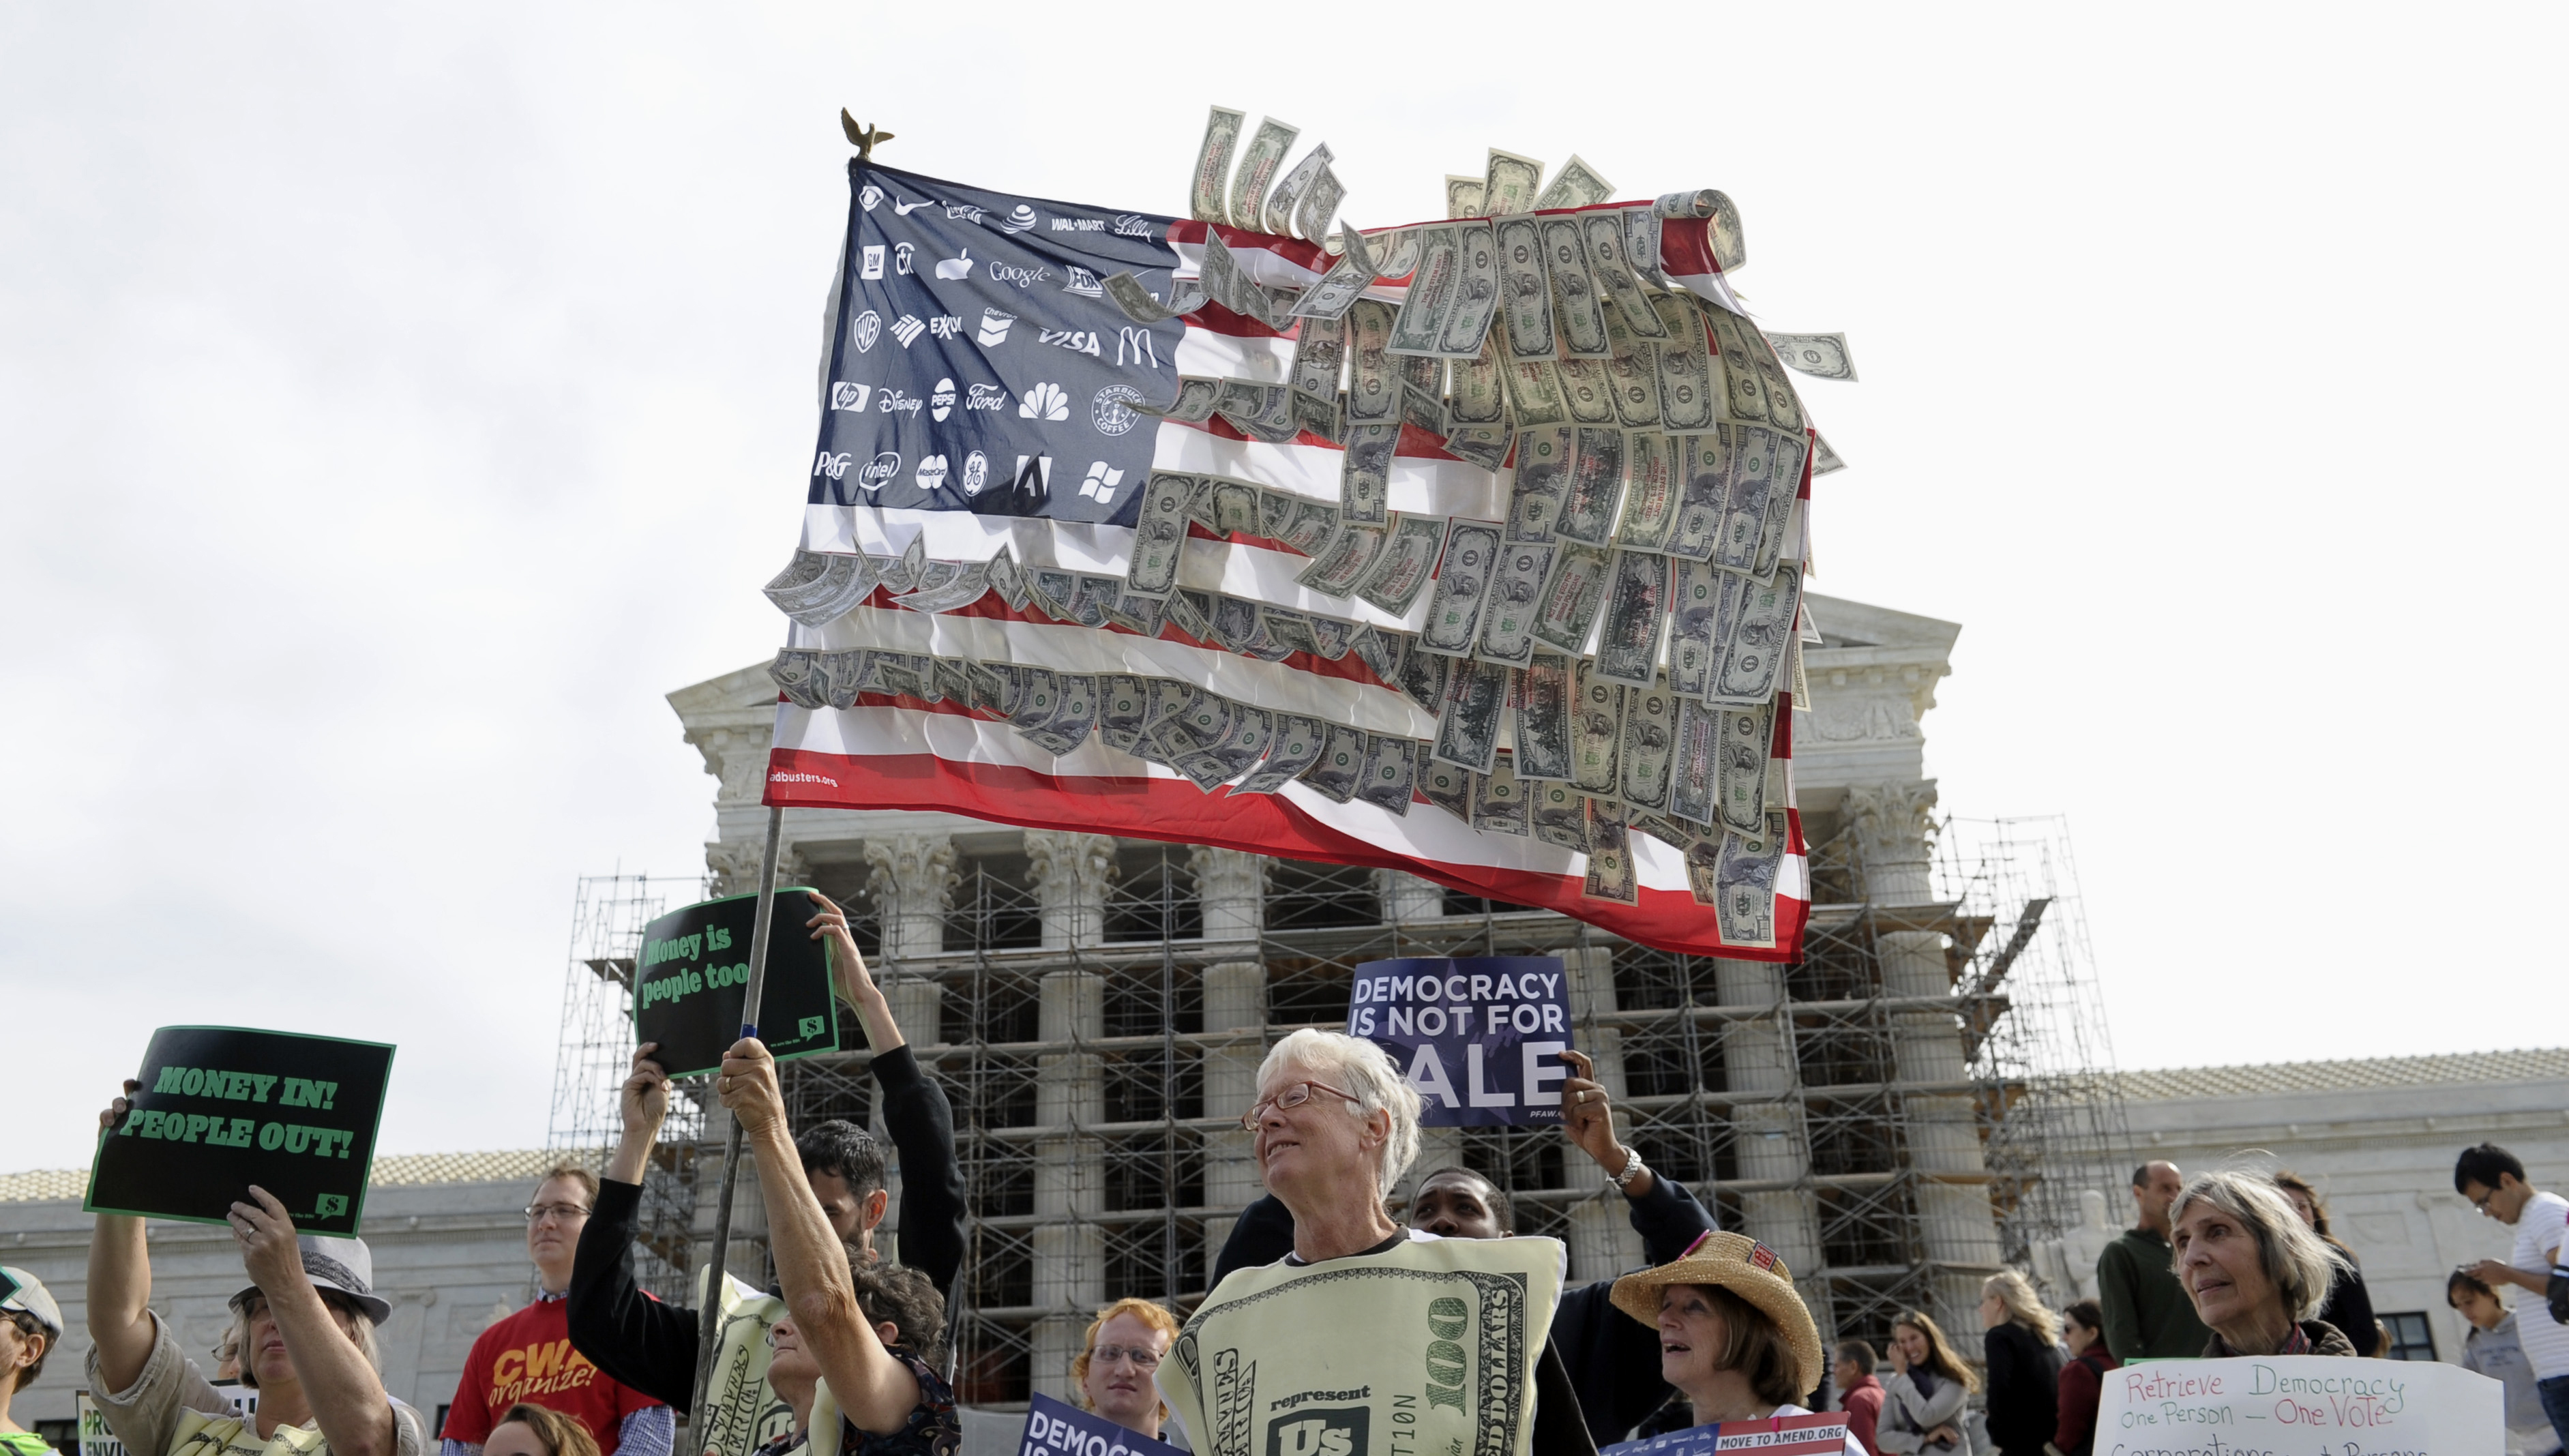 Demonstrators gather outside the Supreme Court on Oct. 8, 2013, as the court hears arguments on campaign finance. The court ultimately struck down a cap on contributions to political parties in each election.